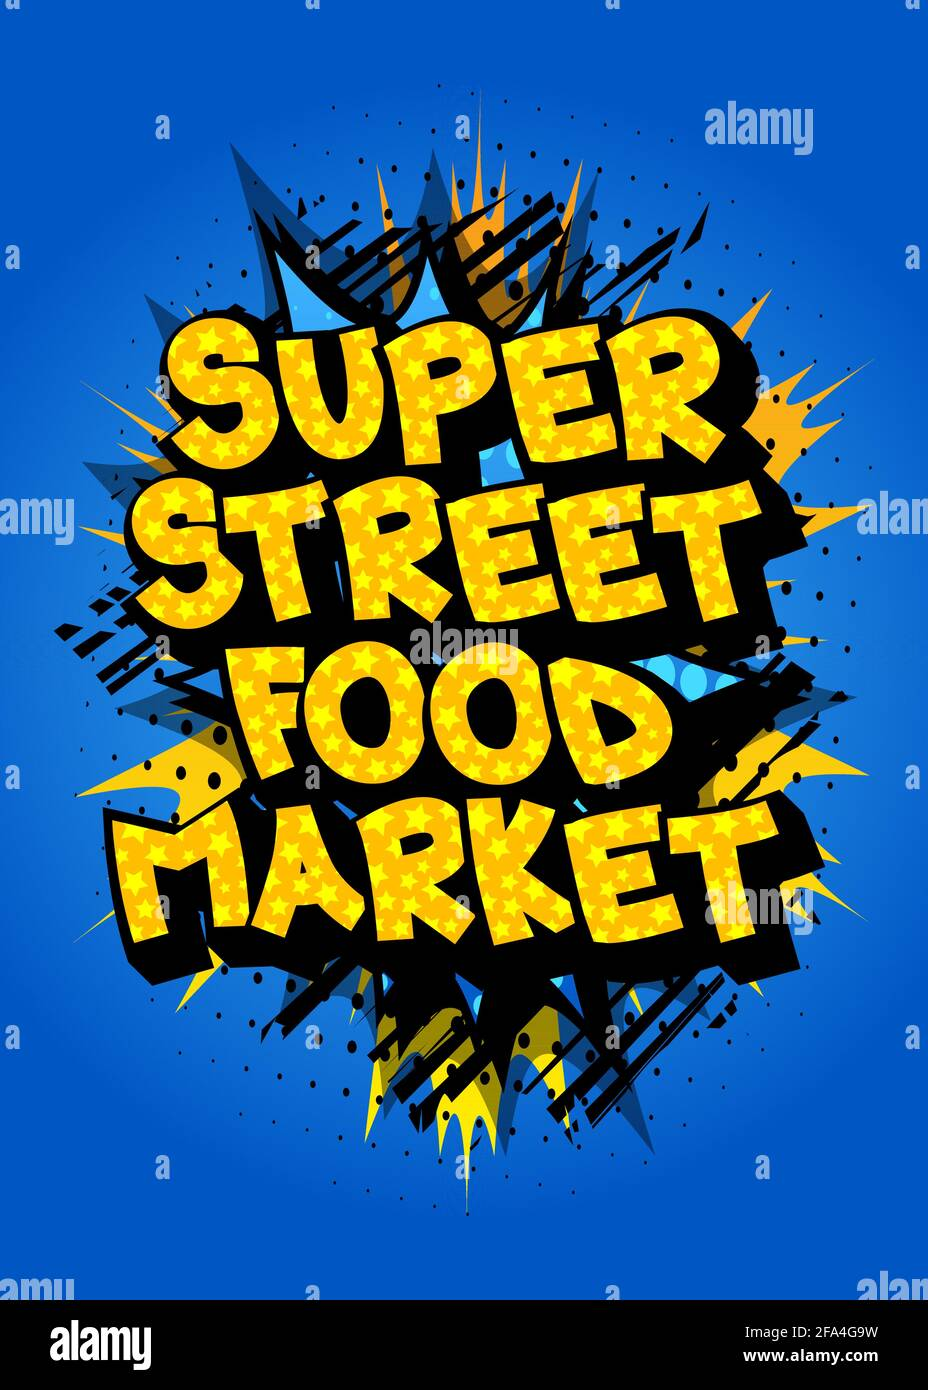 Super Street Food Market - Comic book style text. Street food fun, event related words, quote on colorful background. Poster, banner, template. Cartoo Stock Vector